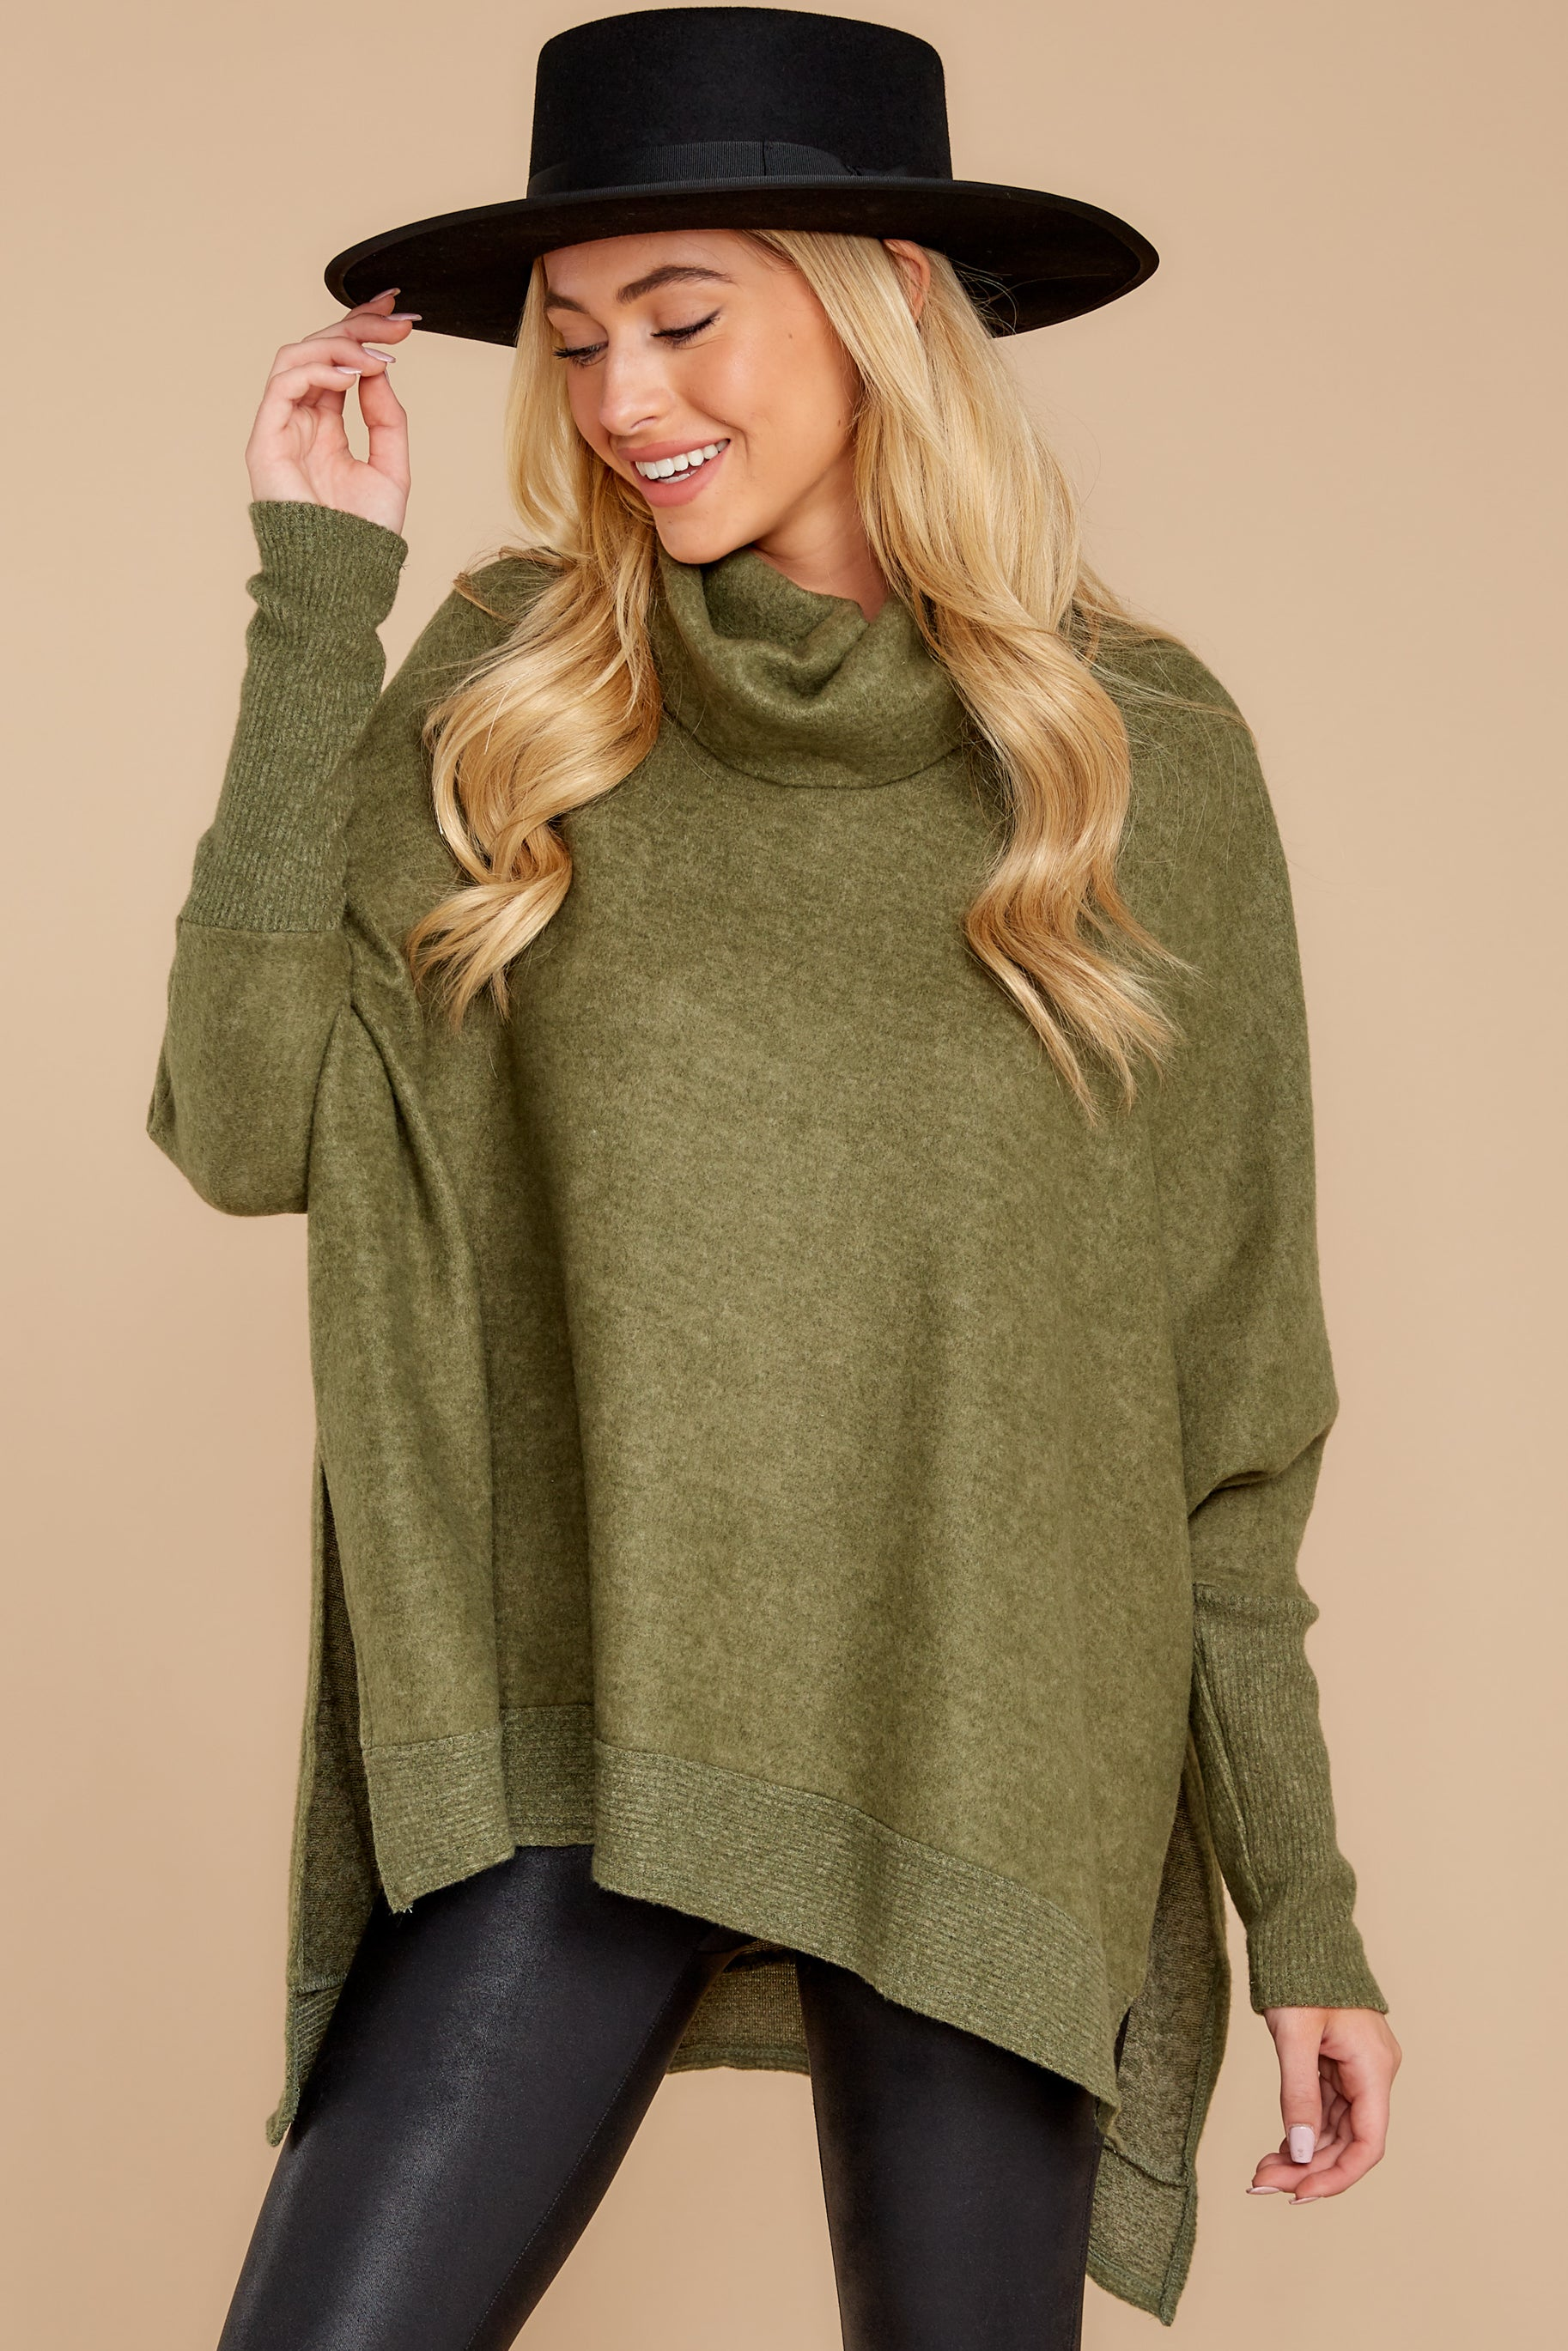 8 Last To Love Heather Green Cowl Neck Sweater at reddressboutique.com